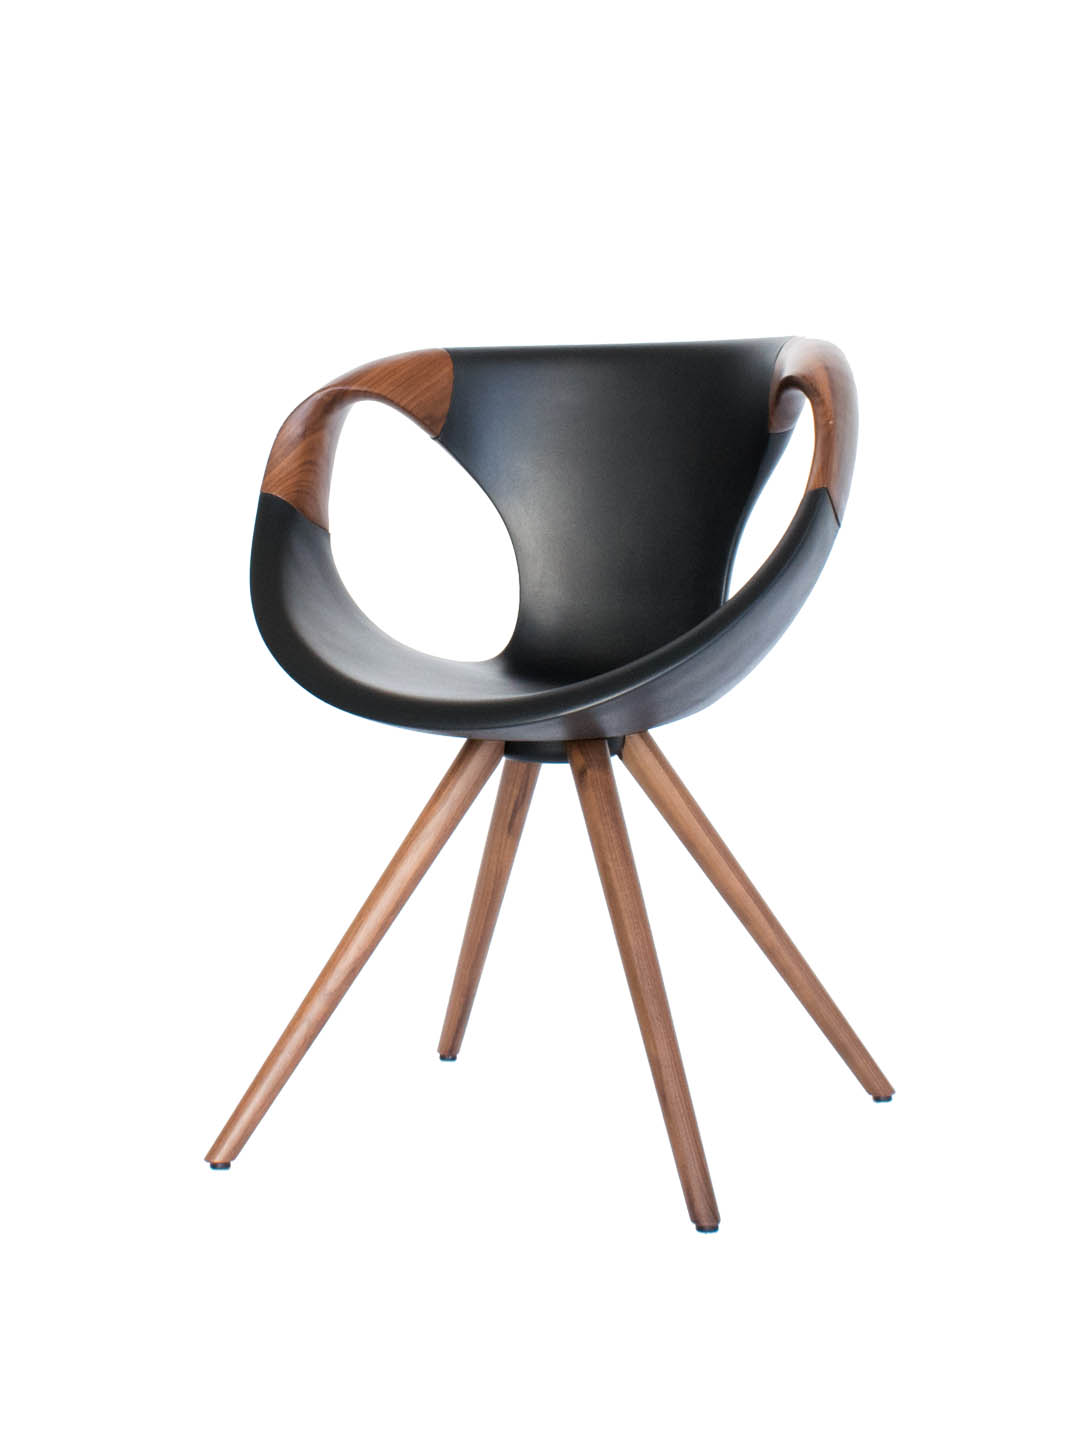 tonon up chair wood tonon designer stuhl nussbaum. Black Bedroom Furniture Sets. Home Design Ideas